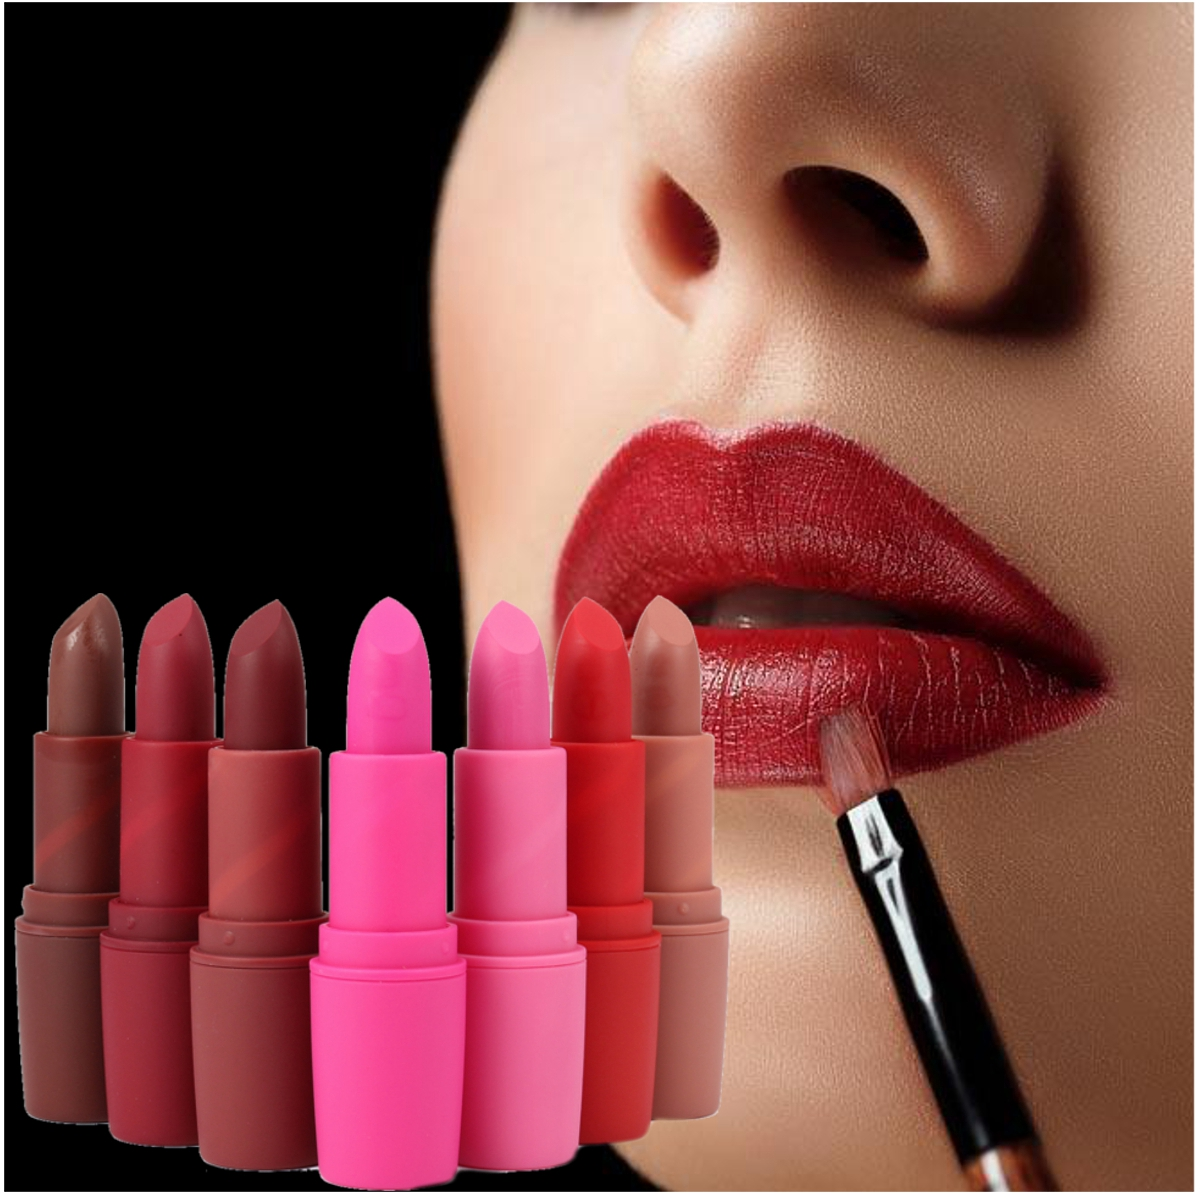 MISS ROSE Matte Dusty Rose Bullet Lipstick Deep Red Lip Sticks Waterproof 7 Colors